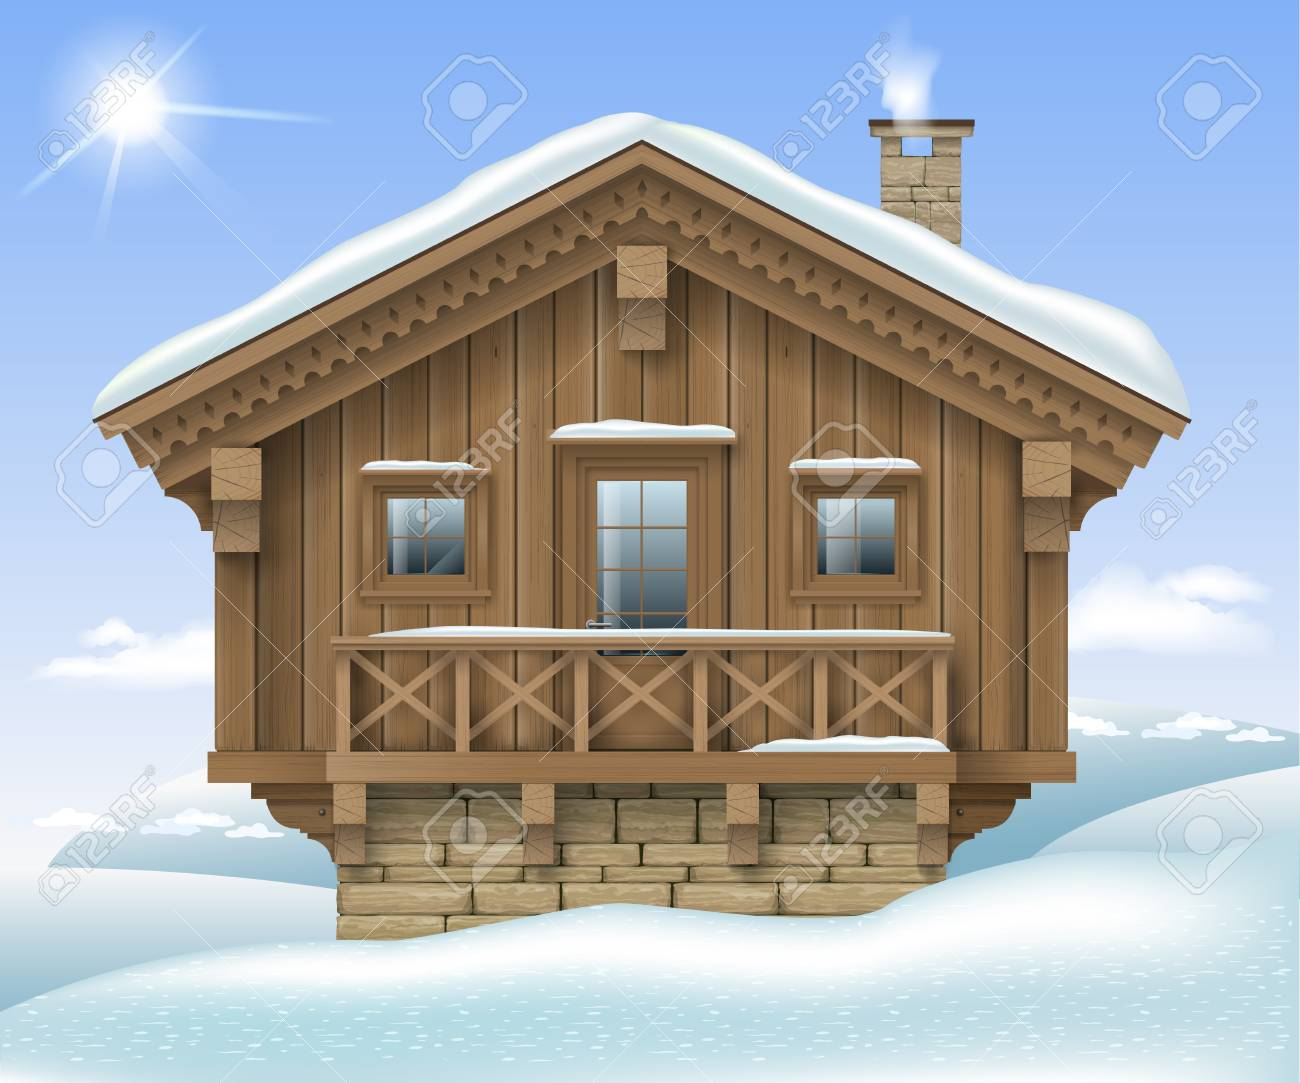 Wooden Small House Or Chalet In The Winter Mountains The